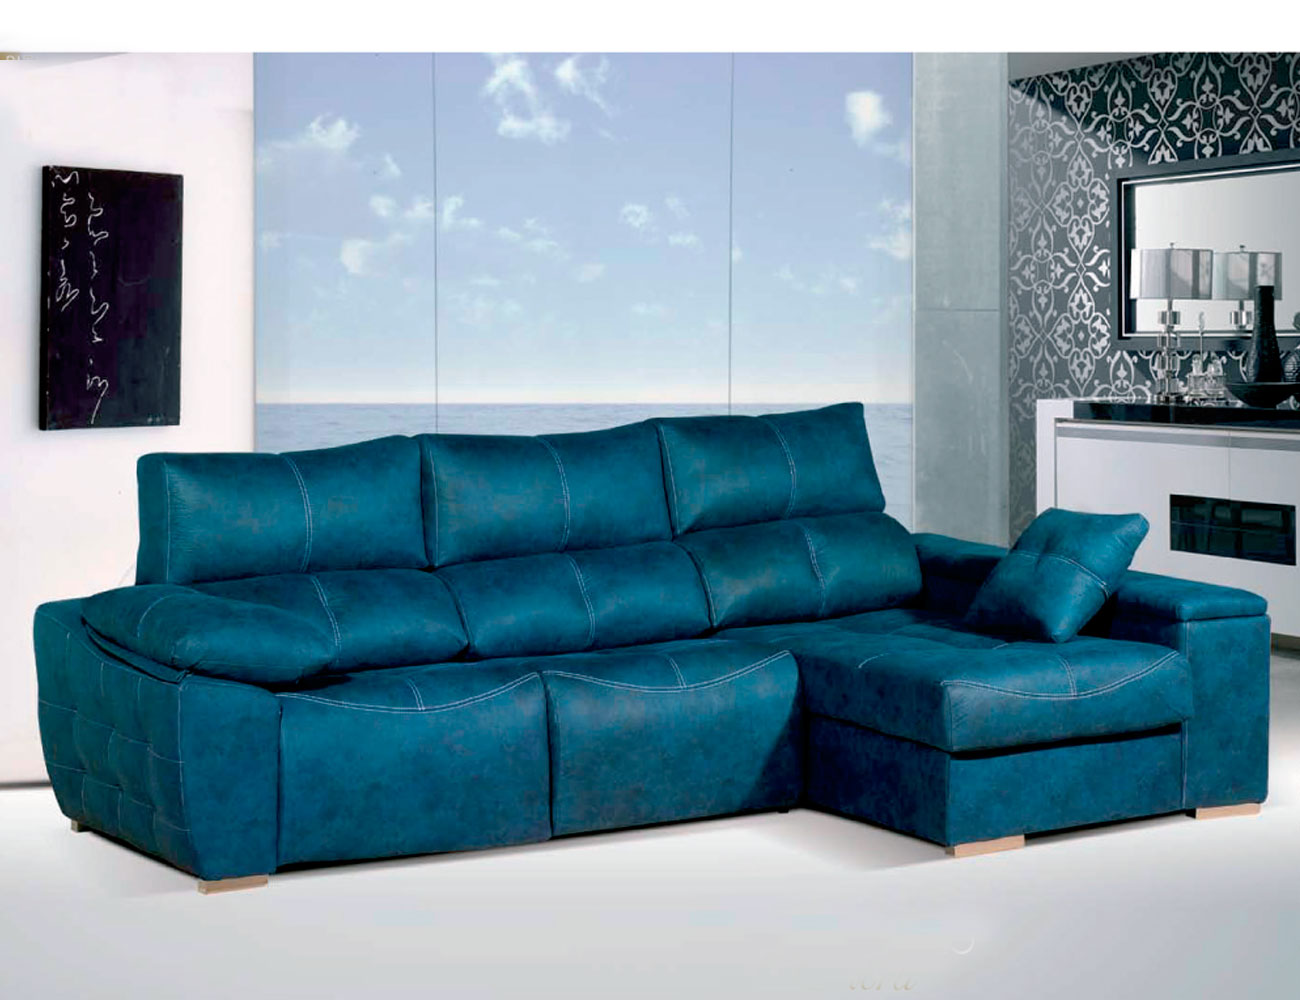 Sofa chaiselongue relax 2 motores anti manchas turquesa16